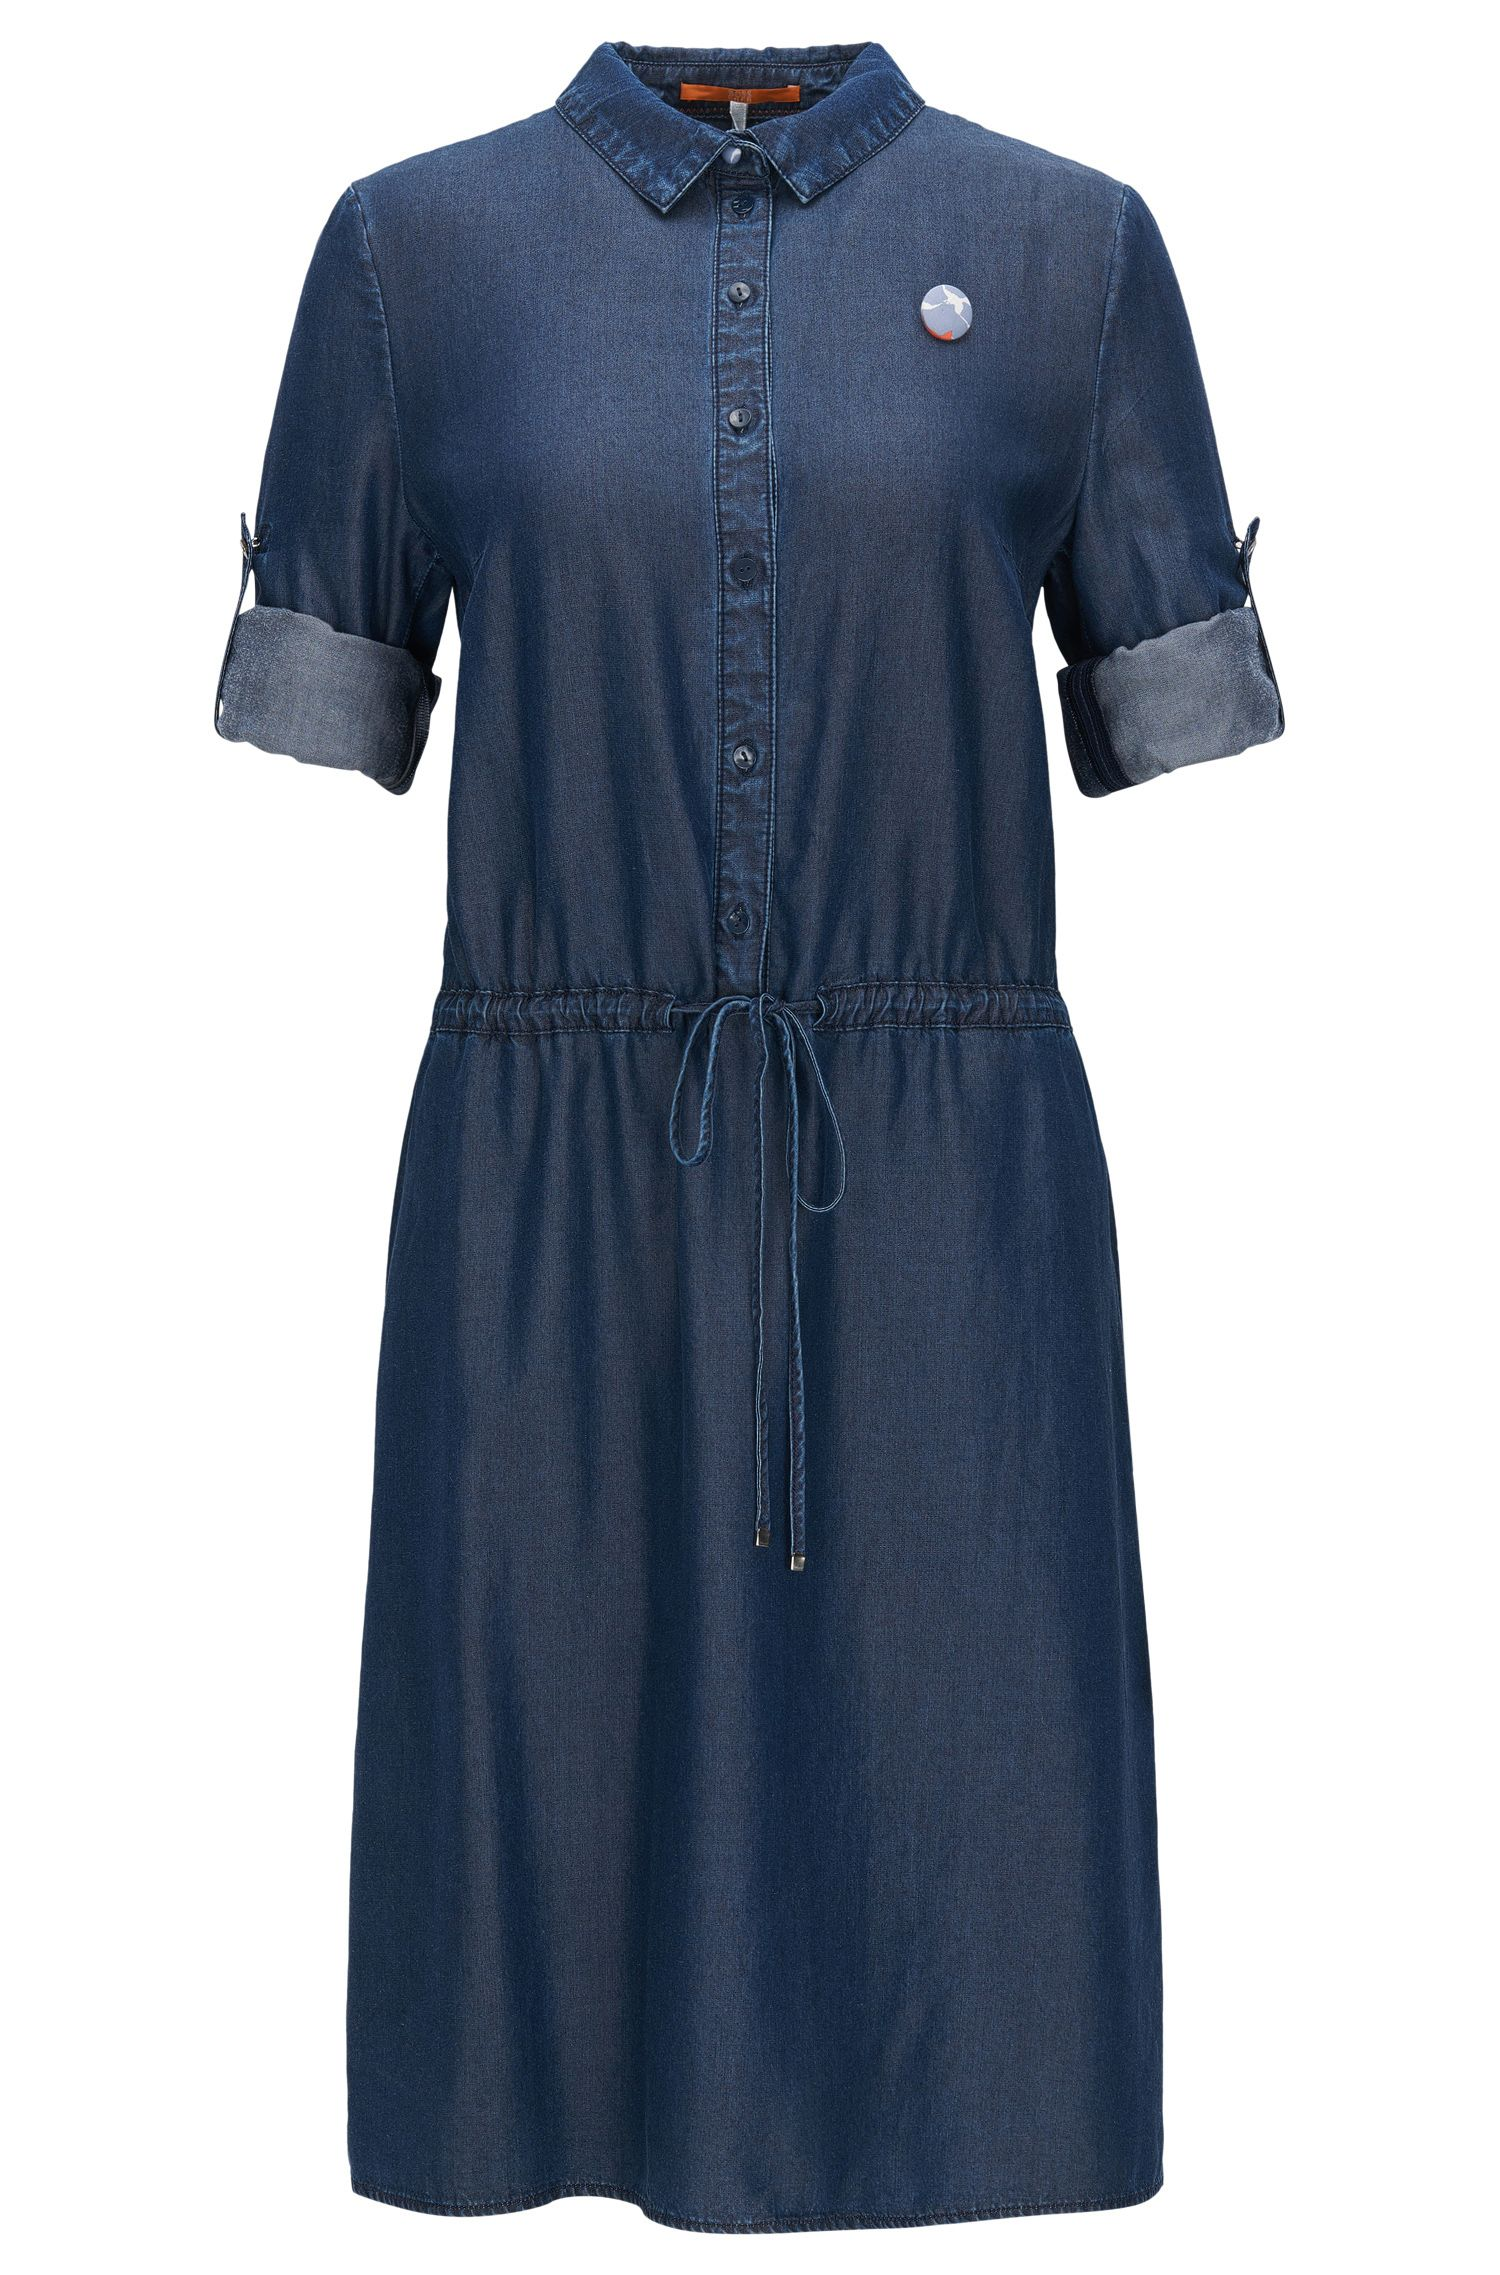 Hemdblusenkleid aus Denim in Washed-Optik